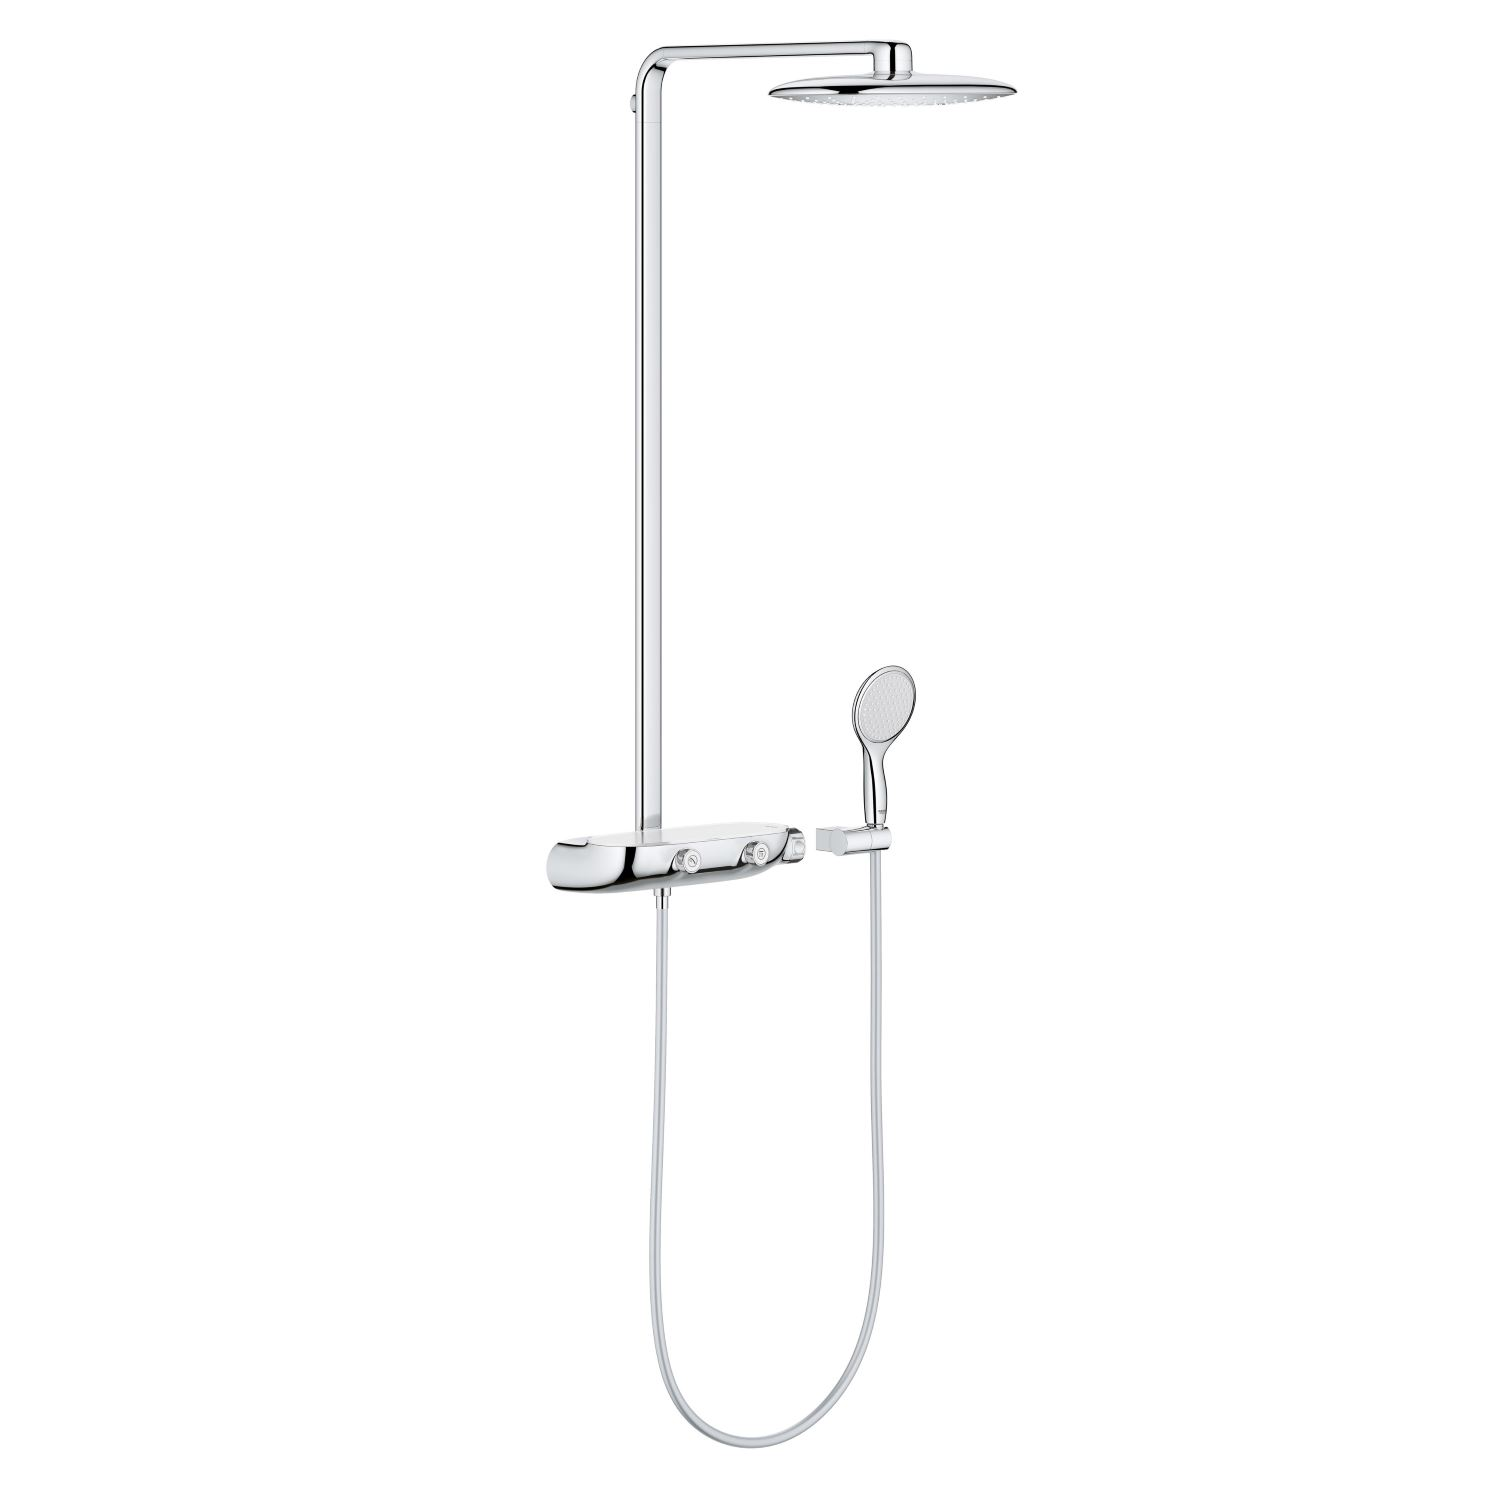 Rainshower Systeem SmartControl 360 MONO Douchesysteem met thermostaatkraan (Chroom)